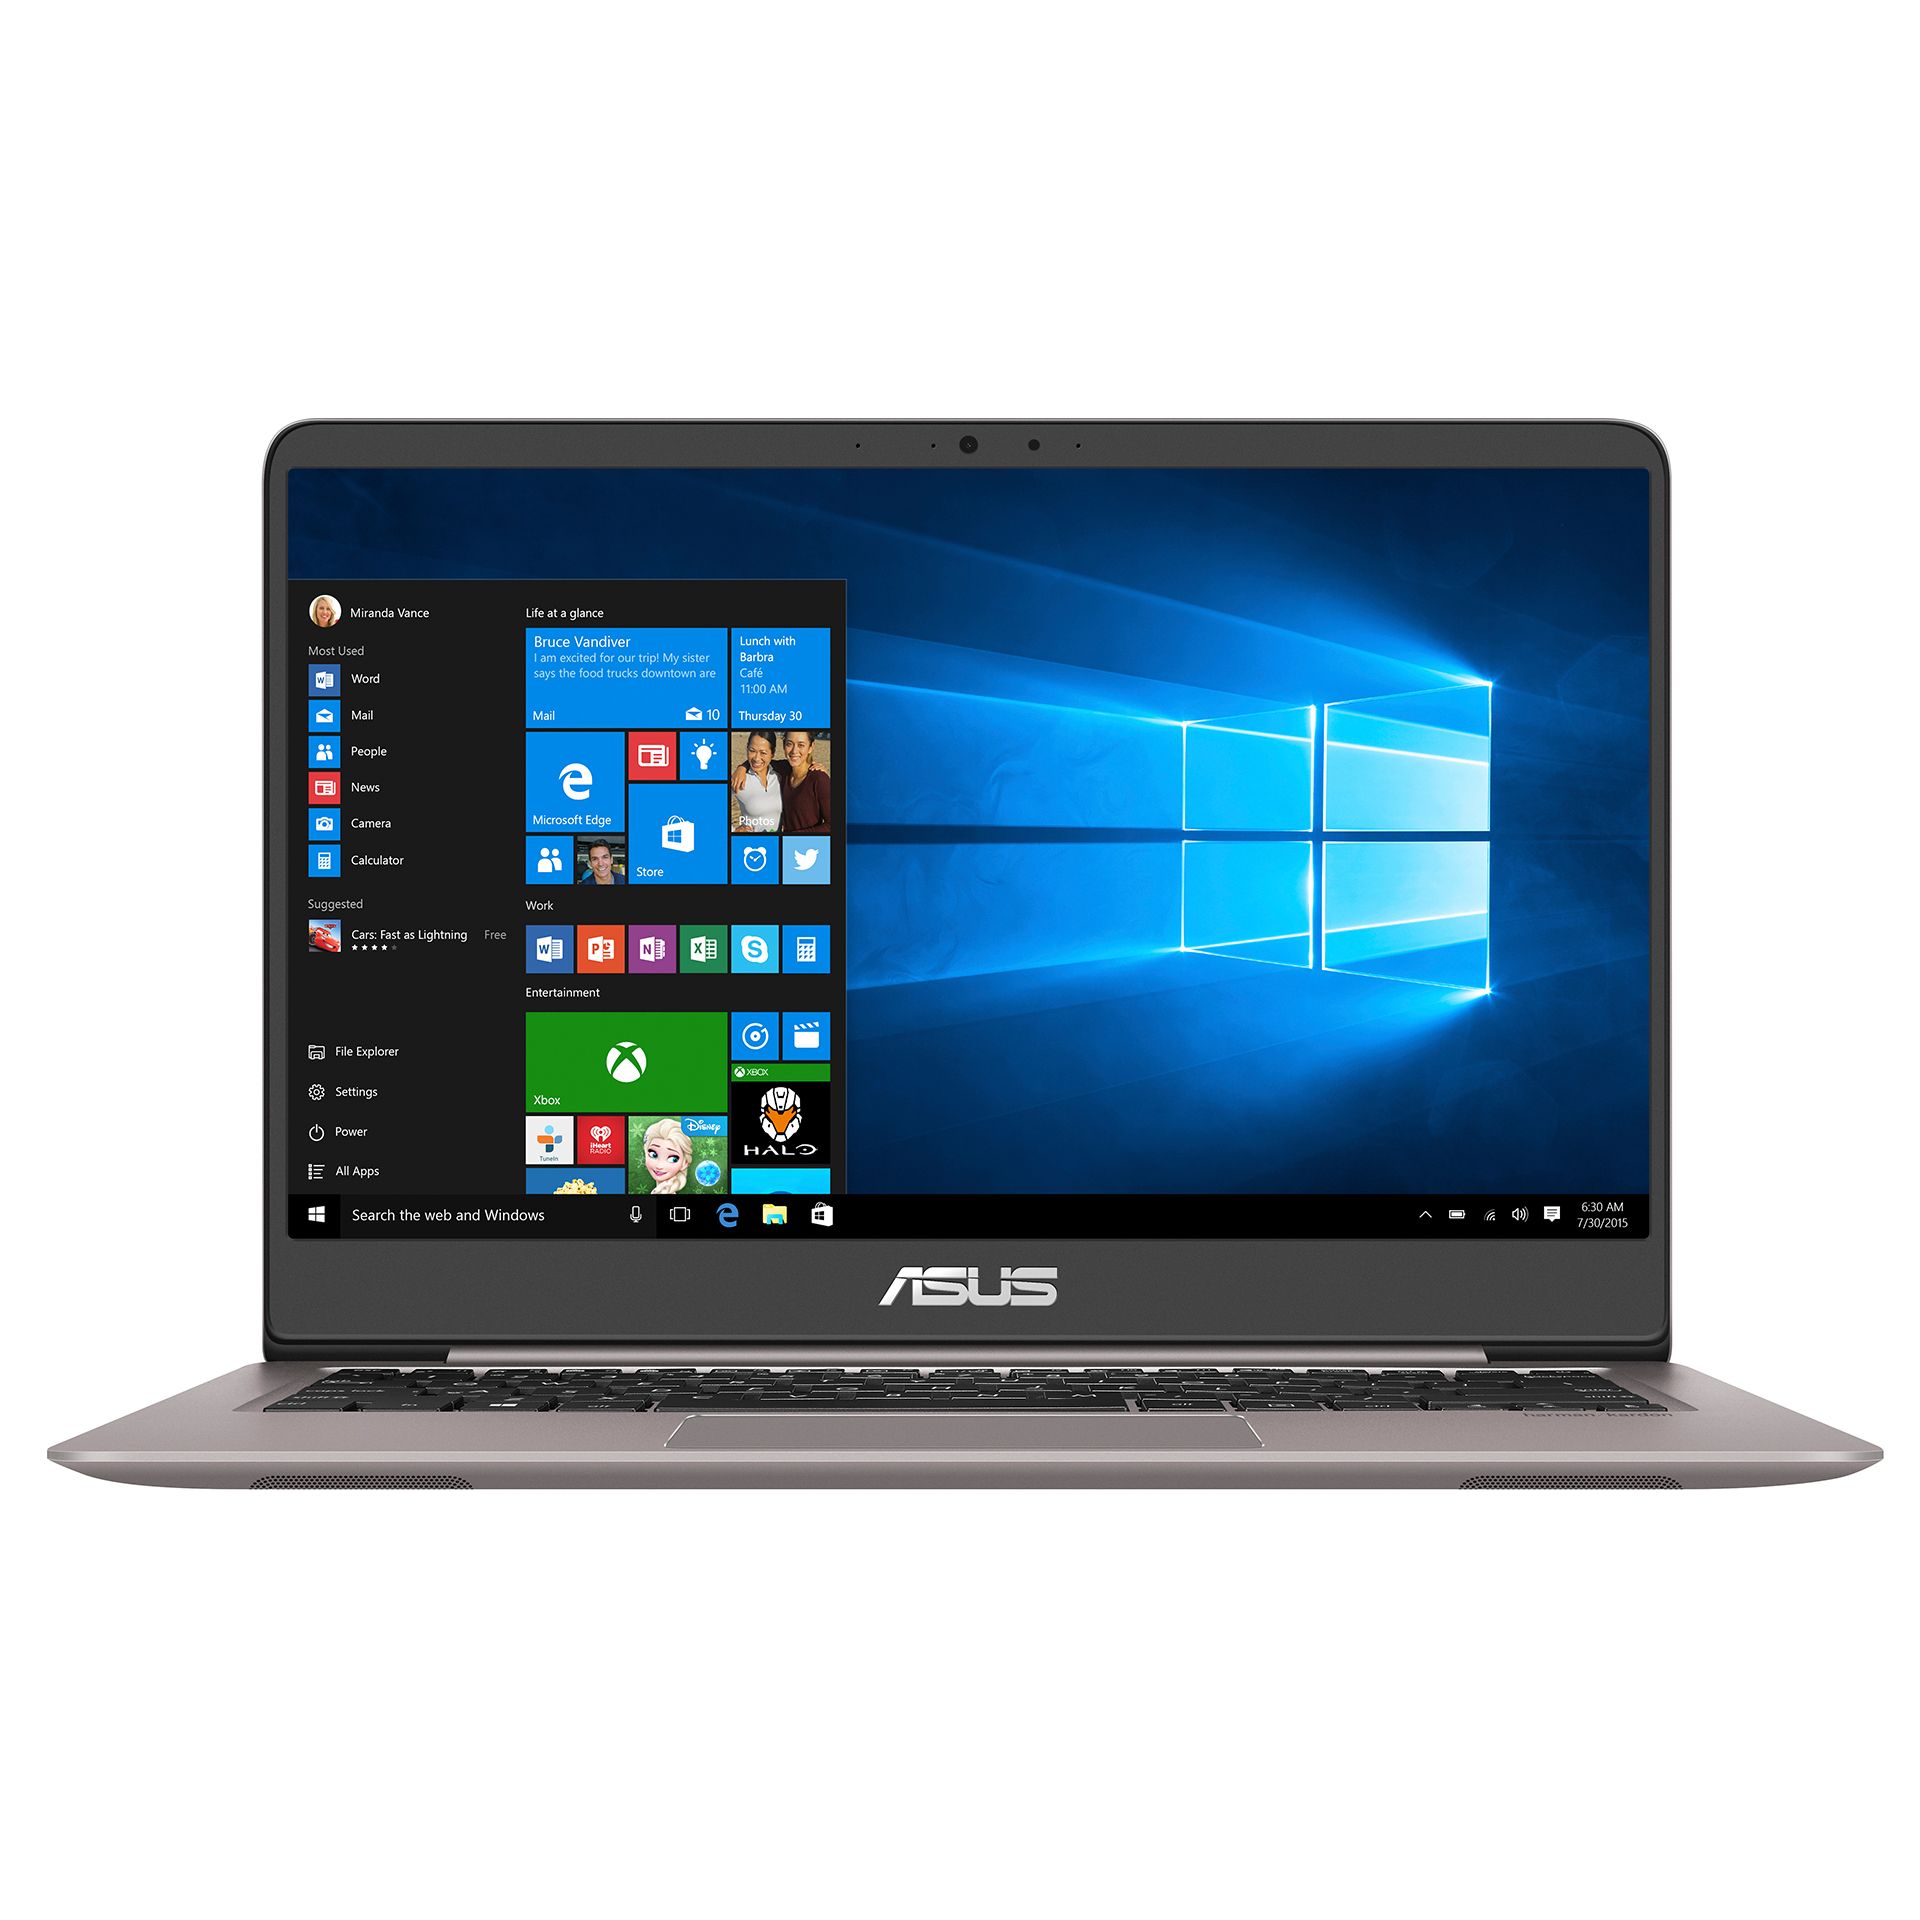 ASUS-UX410UA-QUARTZ-GRAY-WHITE-01.jpg